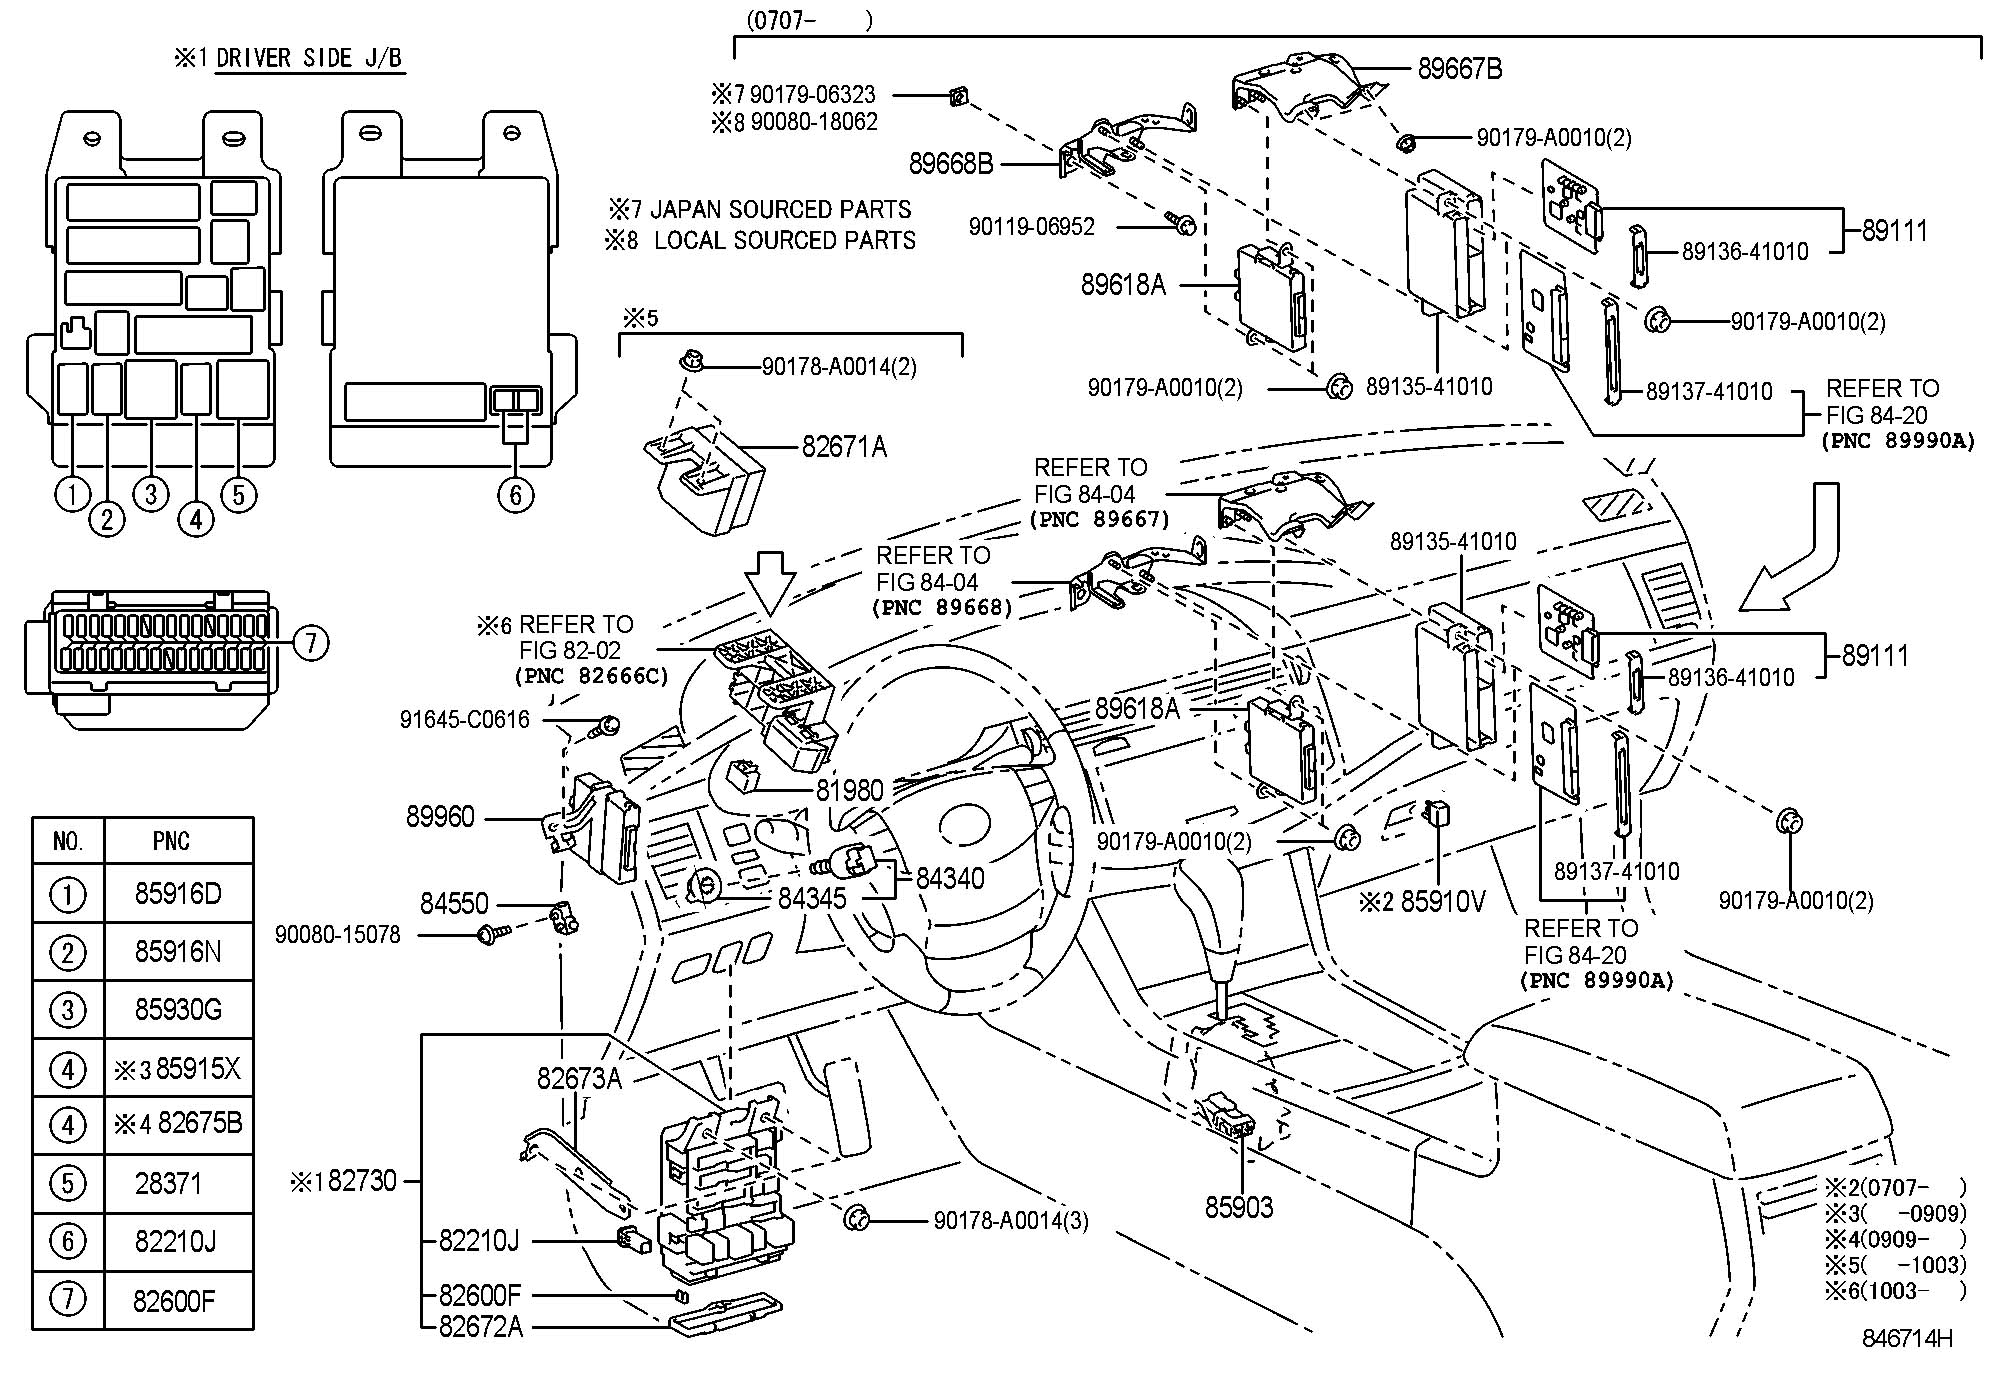 2001 Toyota Camry Power Window Wiring Diagram Html also Air Conditioner 2009 Dodge Avenger Belt Diagram moreover Tractor Wiring Diagram Alternator additionally Wiring Diagram Of Honda Motorcycle Cd 70 additionally 3w4a17. on toyota avalon relay switch diagram